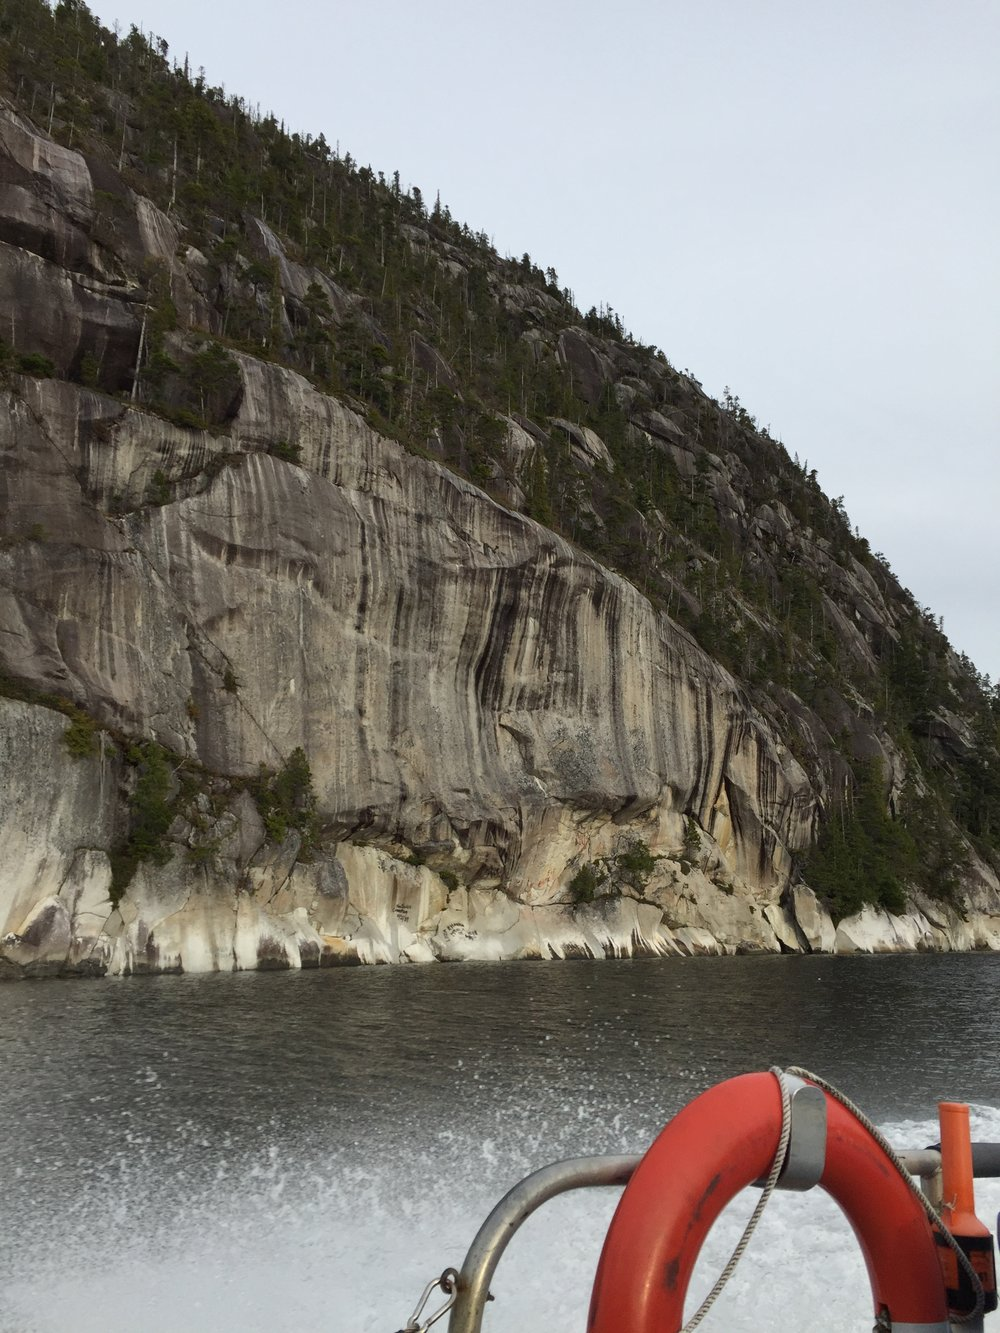 The cliffs are stunning walls of rock